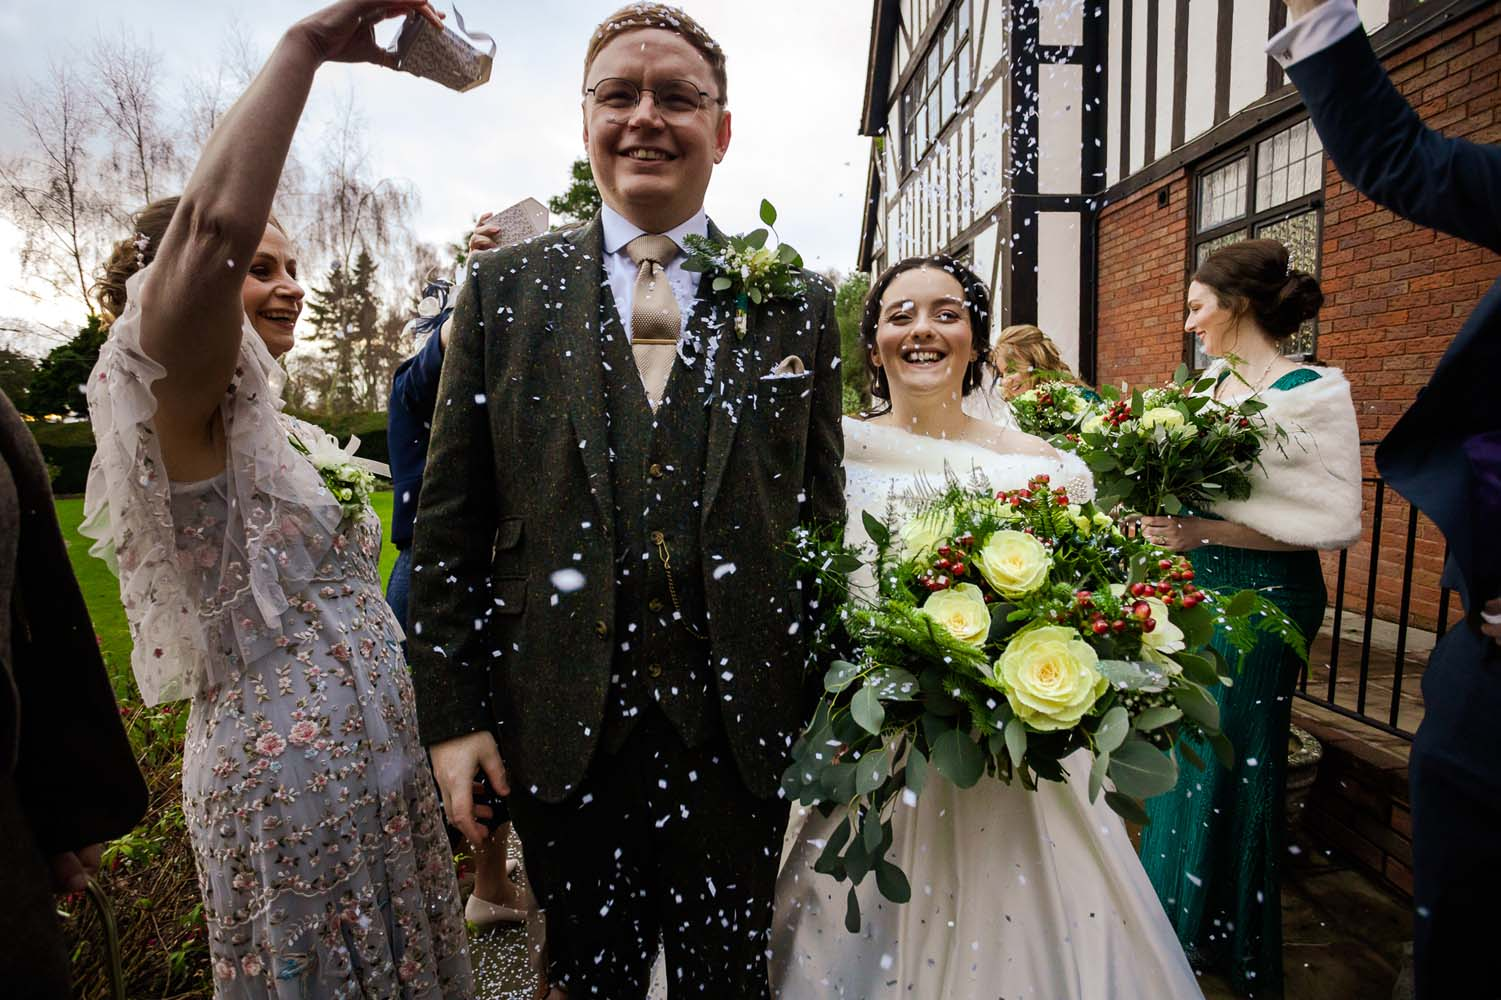 A Bride and Groom walking through their guests having confetti scattered over them.